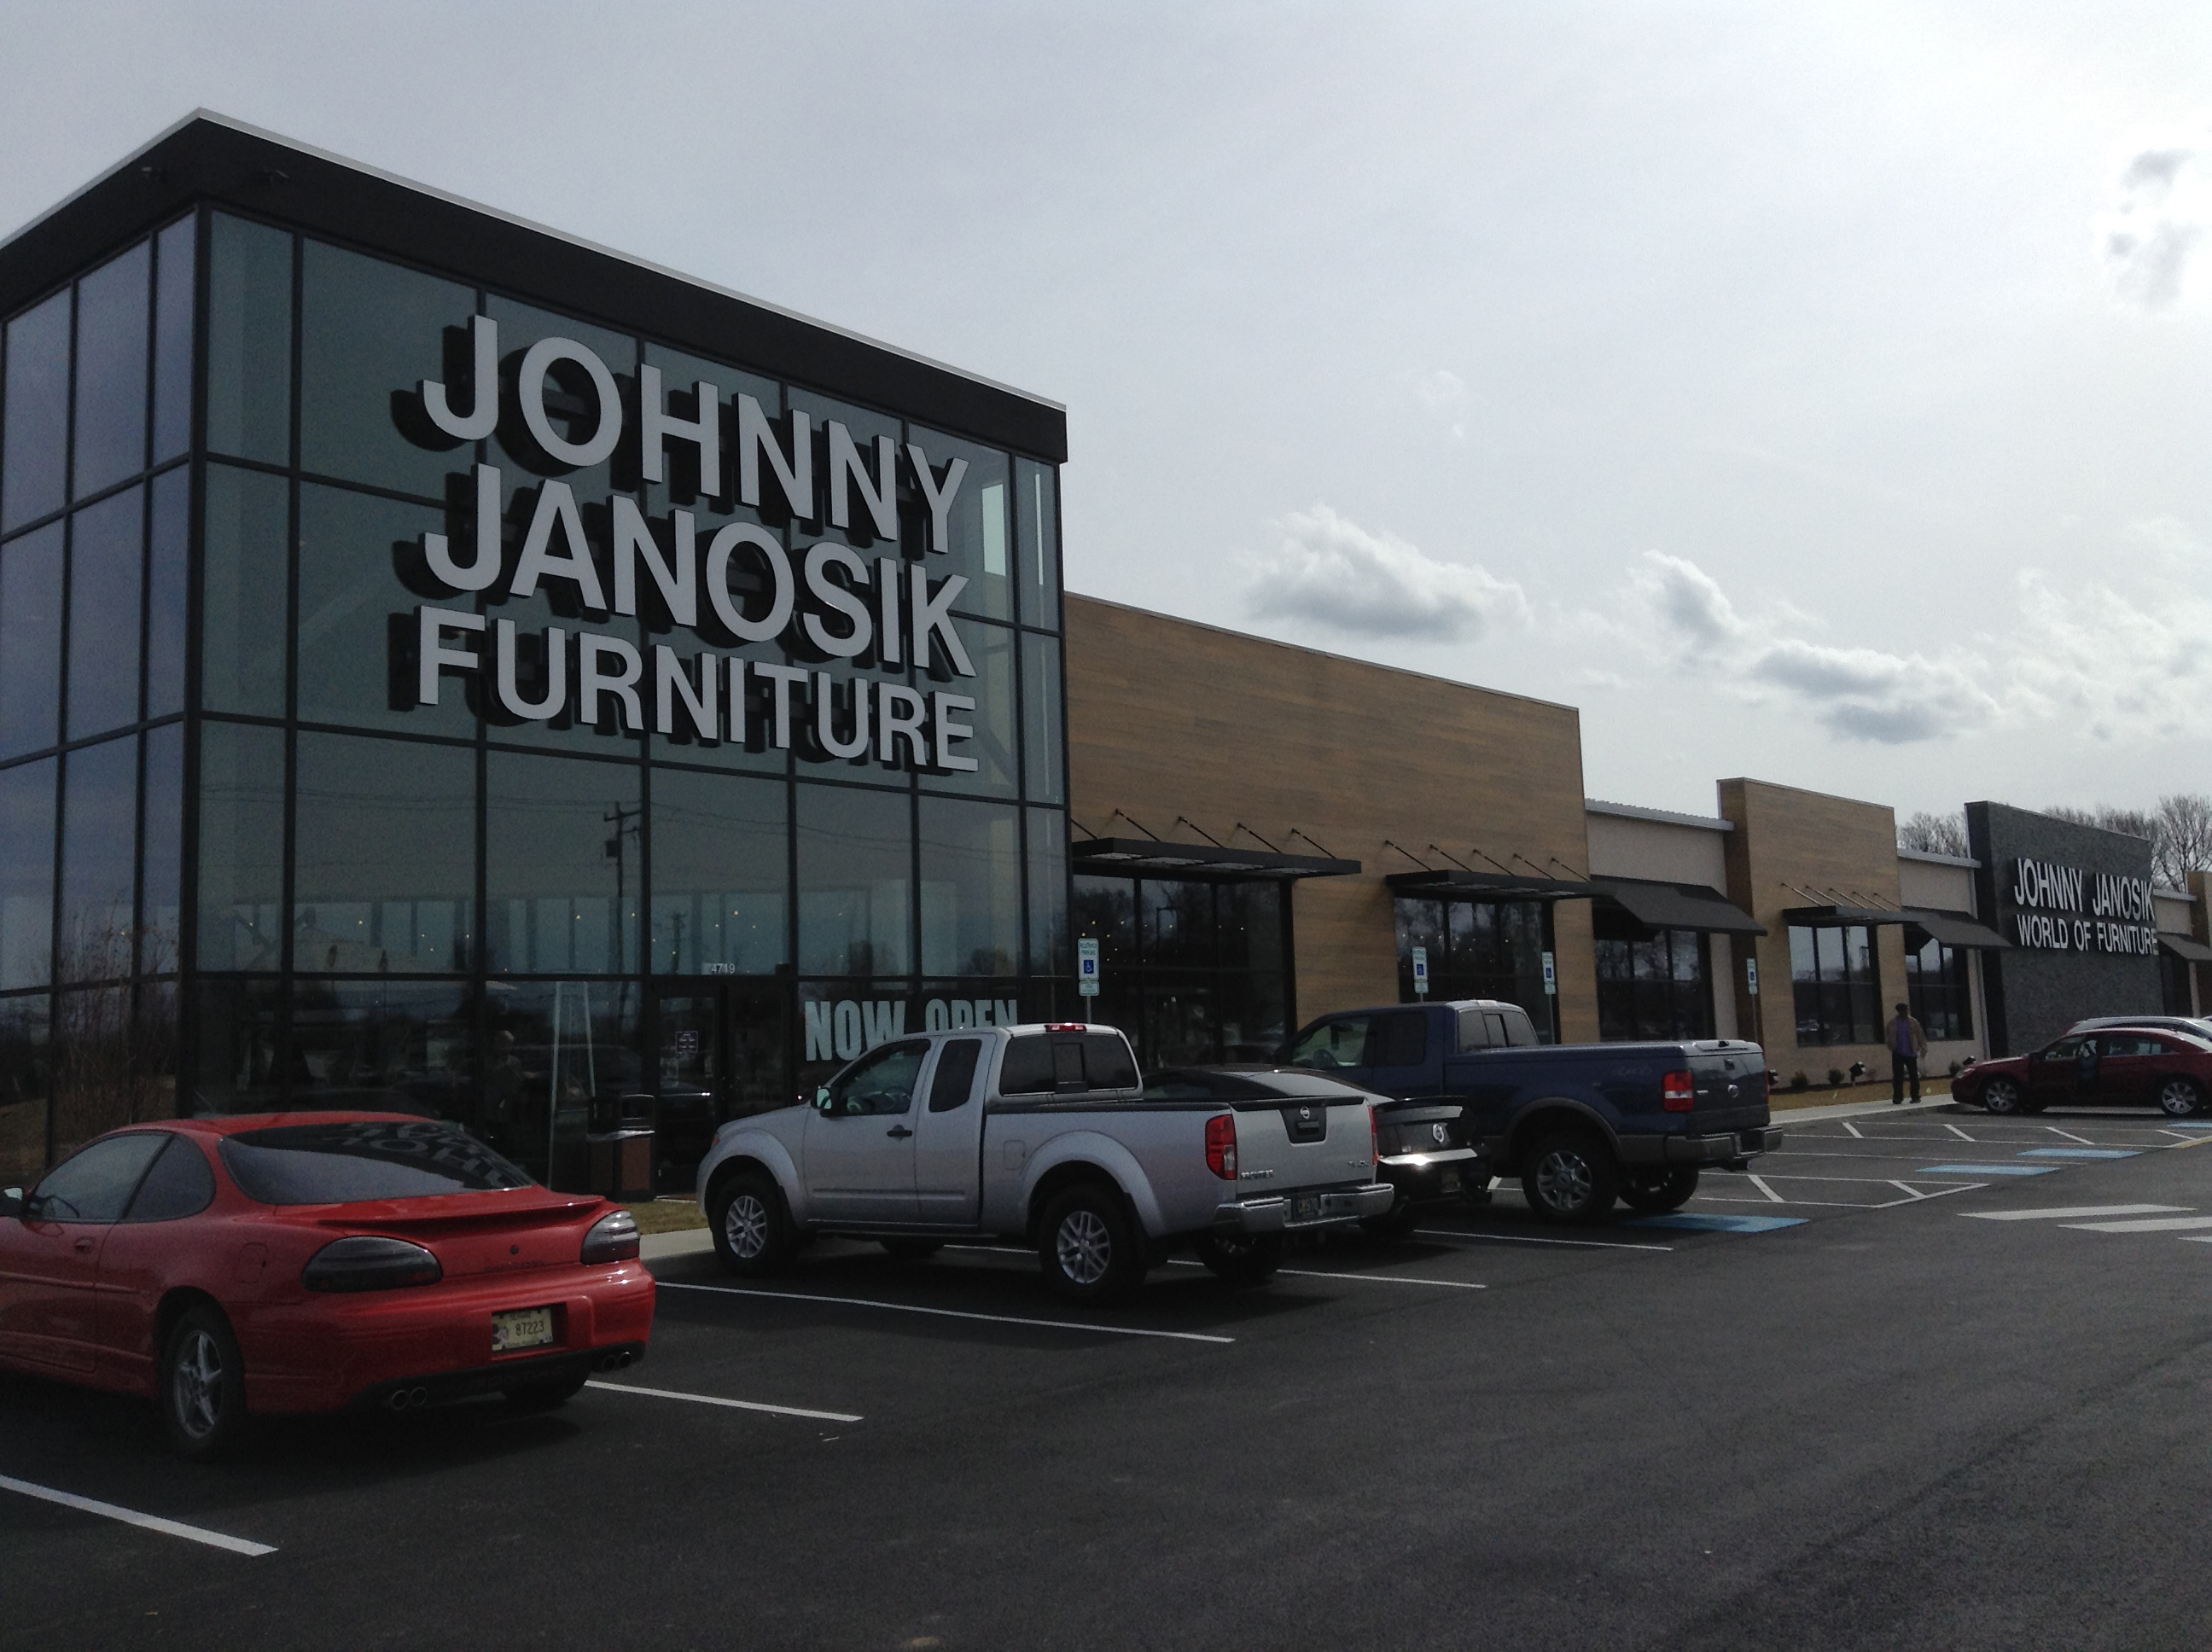 It's long on curb appeal. The retailer went for a modern and 400-foot long storefront for the wow factor when it decided to replace two dated former showrooms here.